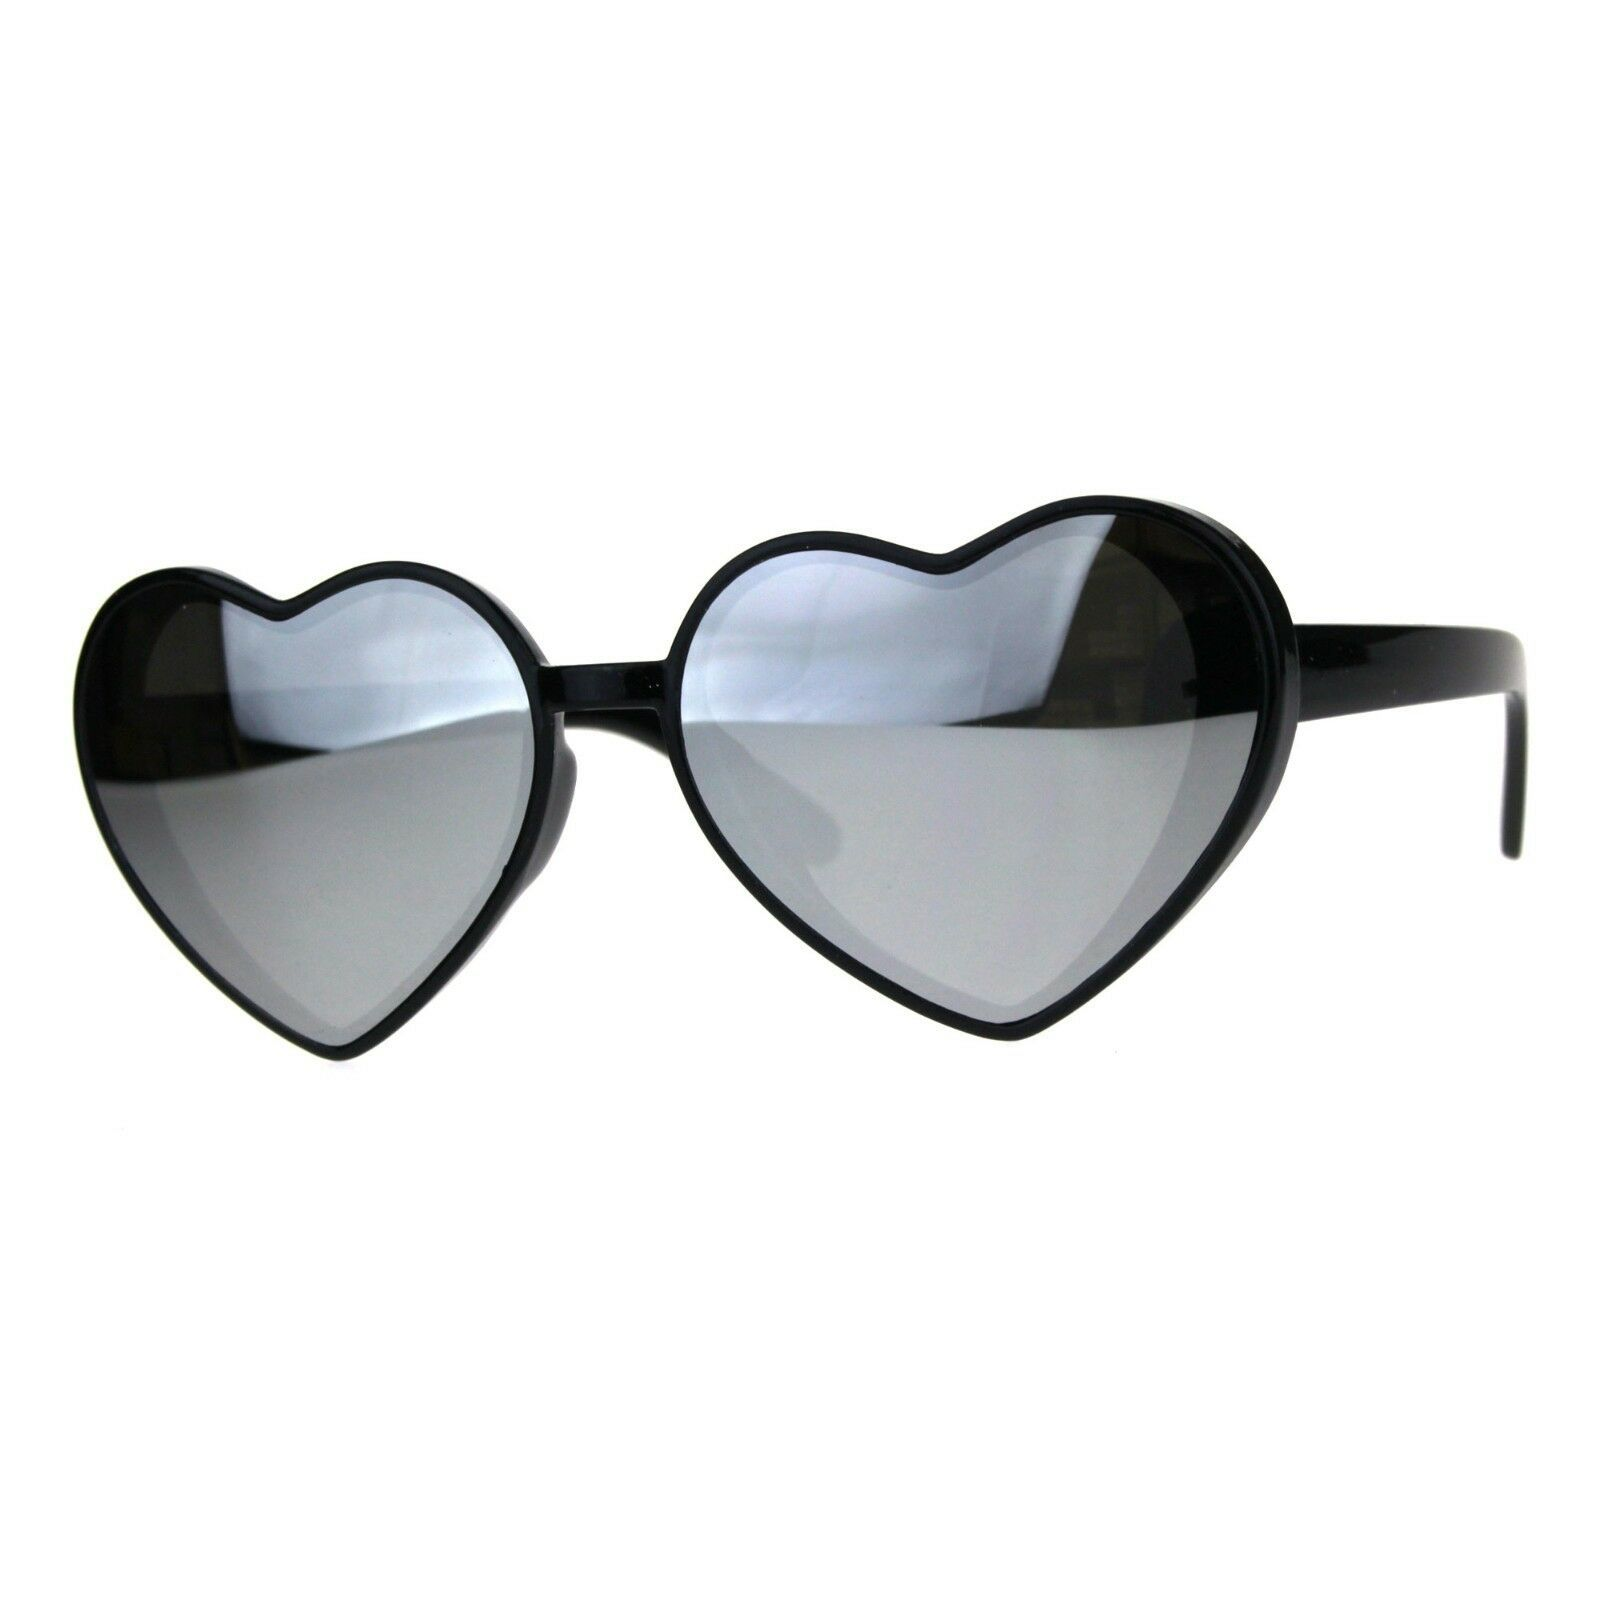 Oversized Heart Shape Sunglasses Womens Fashion Mirrored Lens Shades image 2